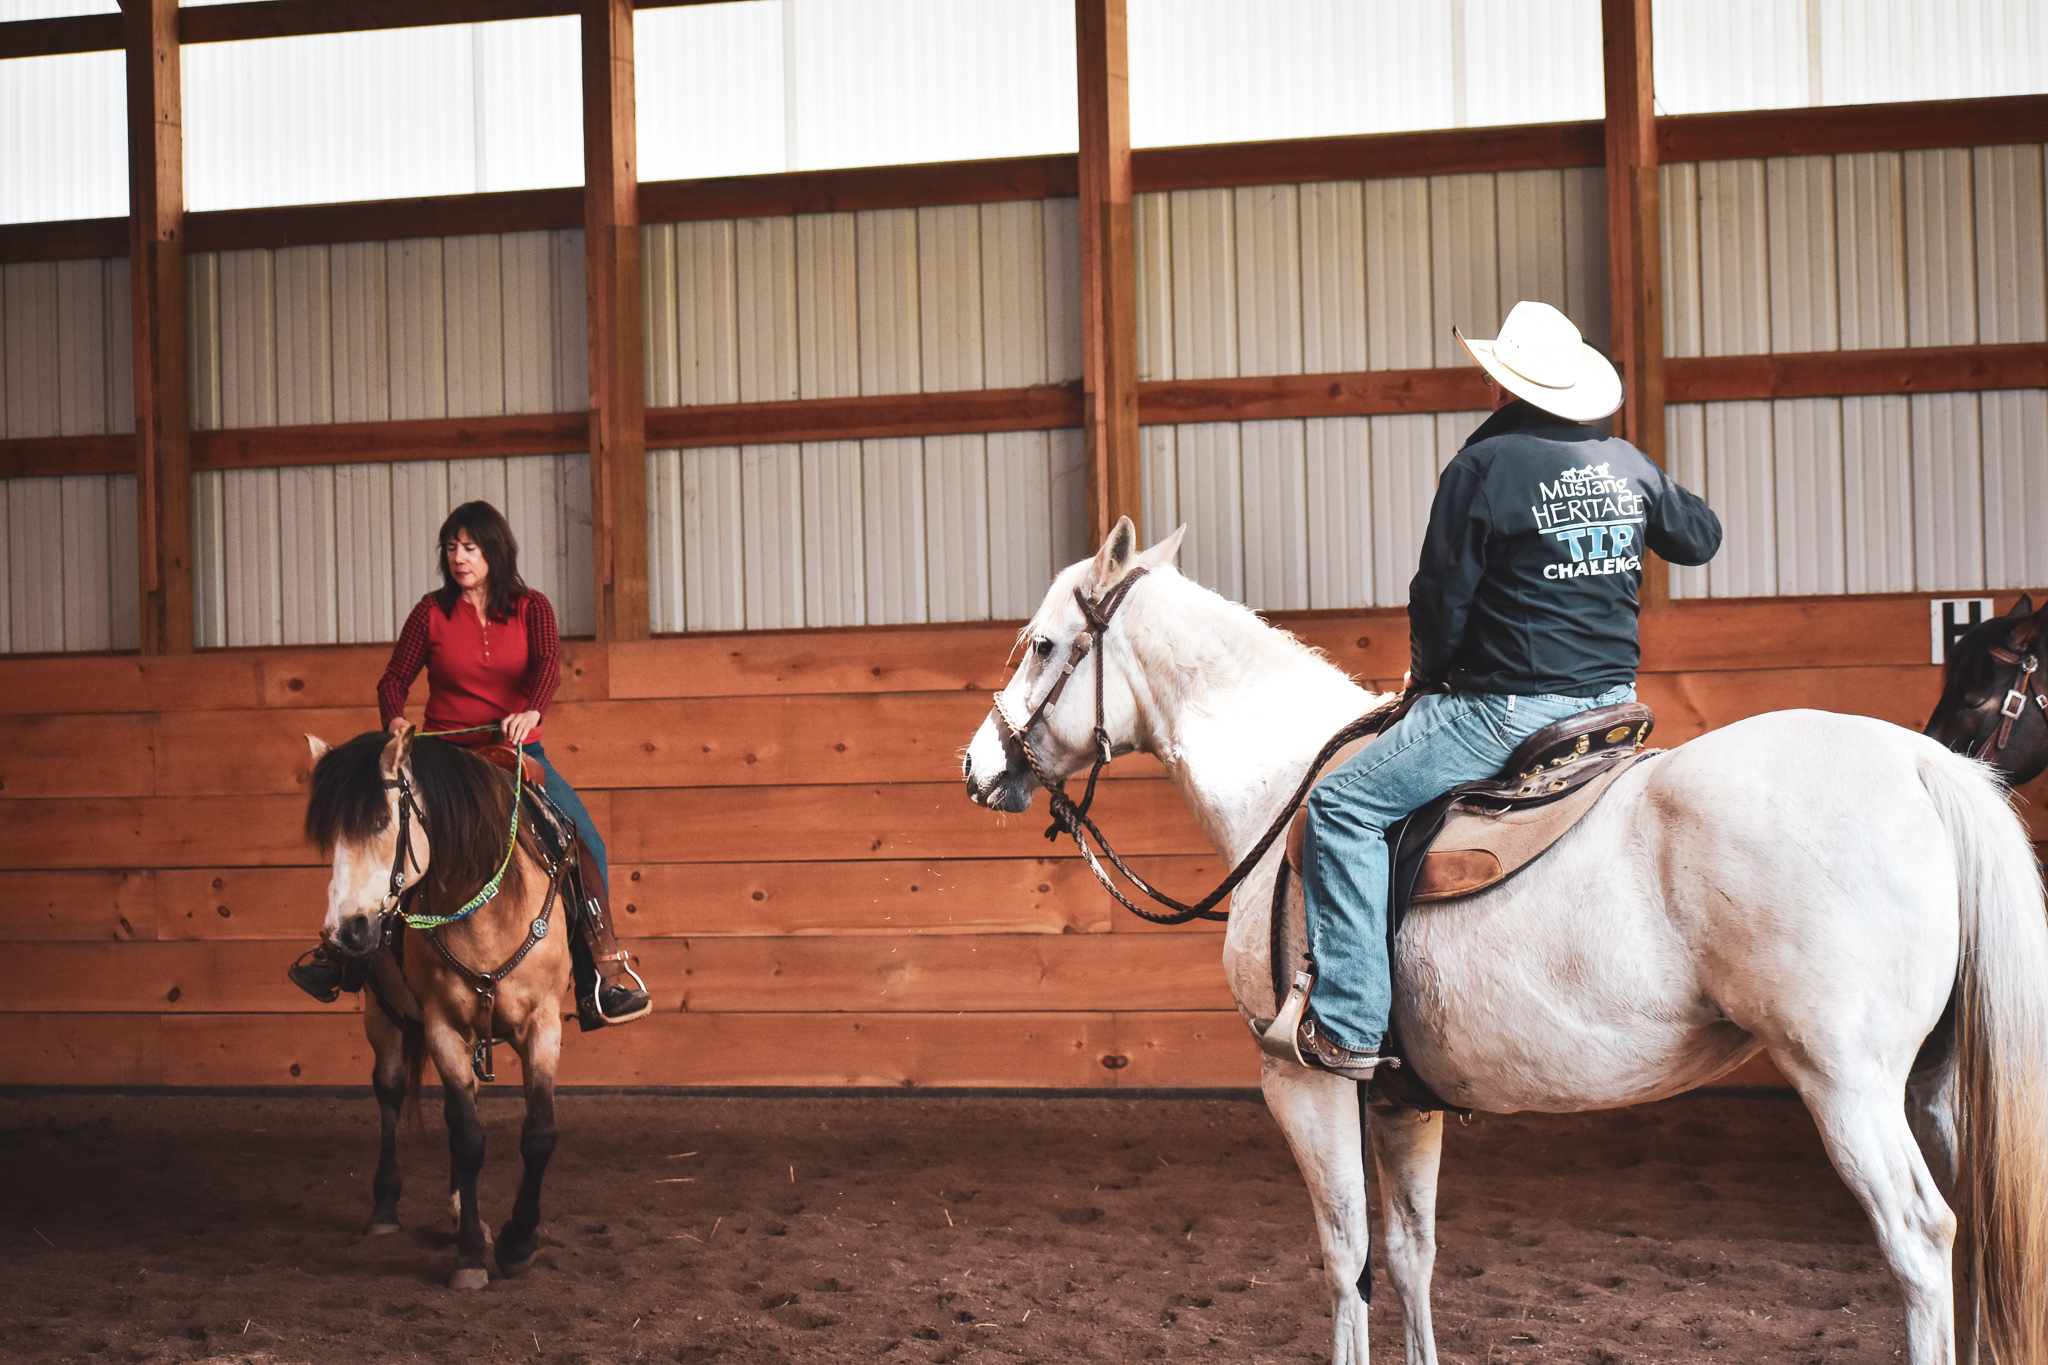 Horse Clinics in Wisconsin - Wisconsin Horse Trainers - Natural Horsemanship Trainers - Mustang Hors